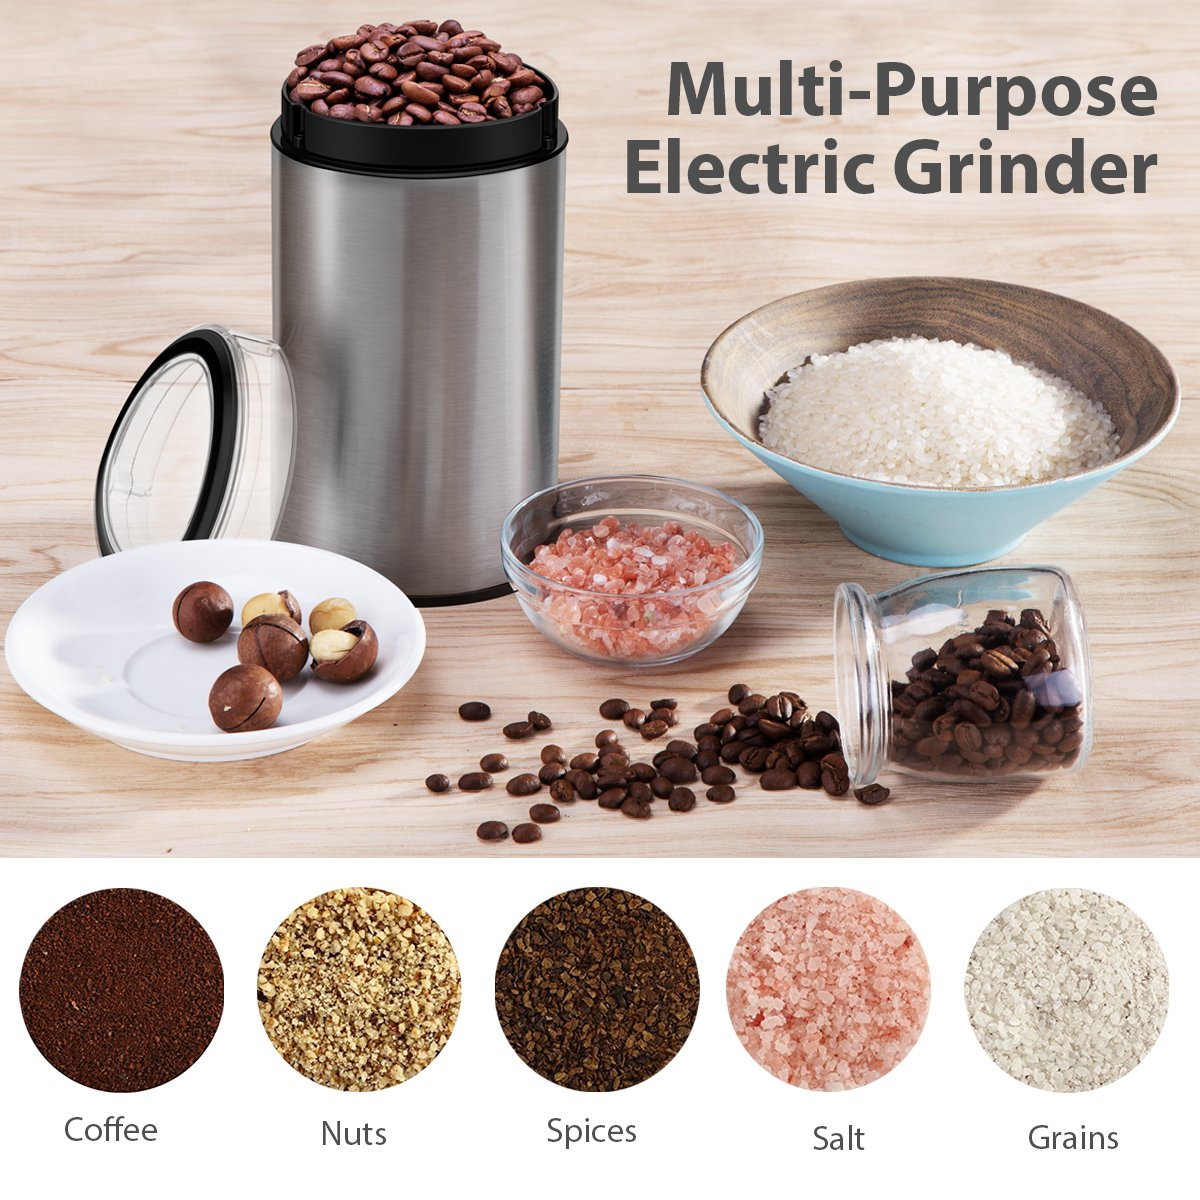 Coffee Grinder Electric, TOBOX Multifunctional Stainless Steel Blade Coffee Grinder Fast Grinding Coffee Beans, Nuts, Grains, Spices (Sliver) by TOBOX (Image #5)